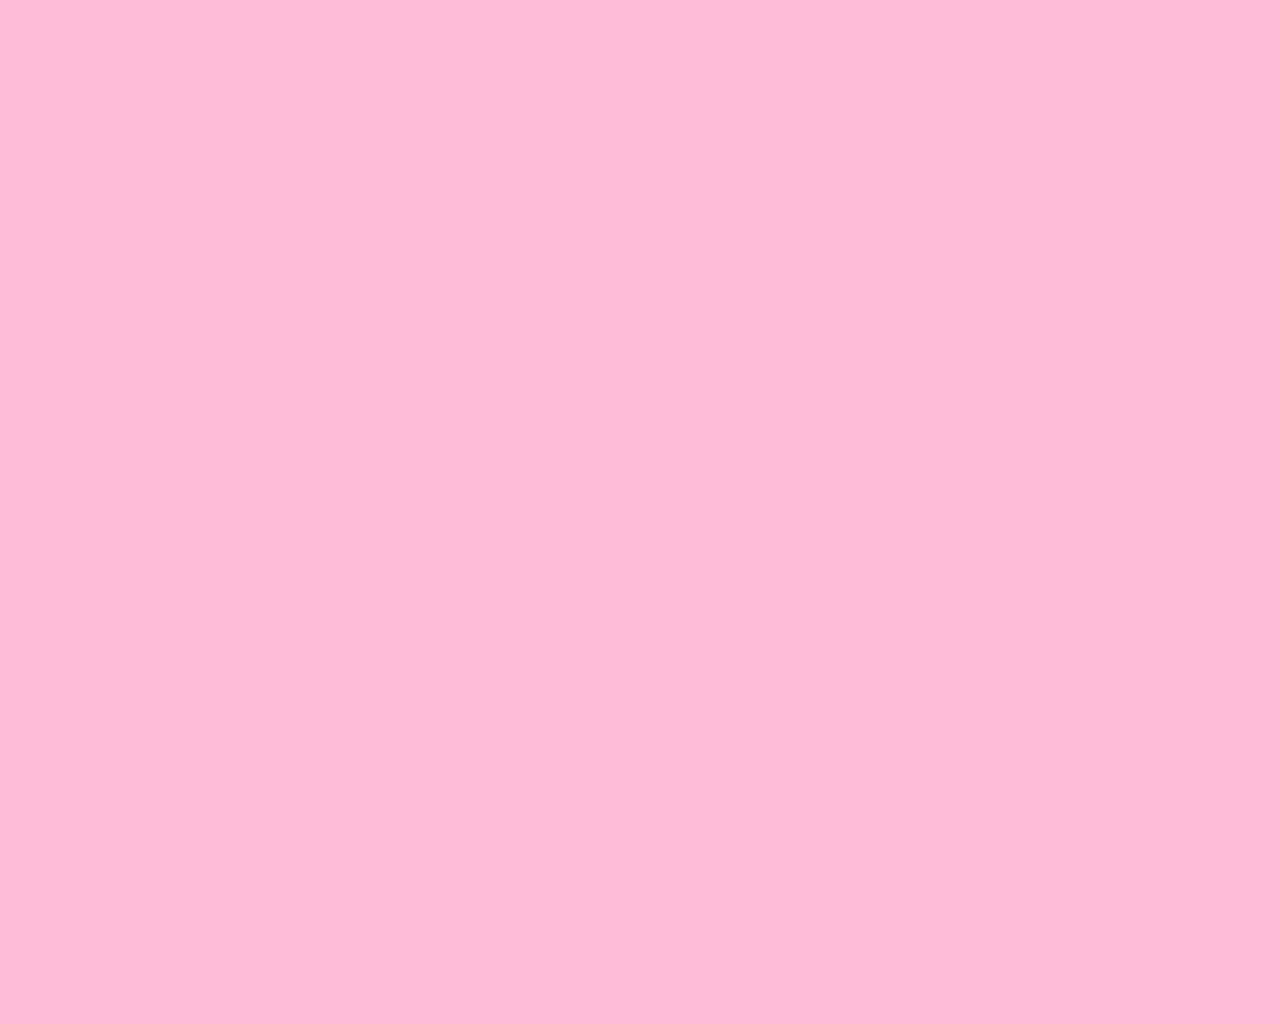 cotton candy pink color | custom ideas | Pinterest | Cotton candy